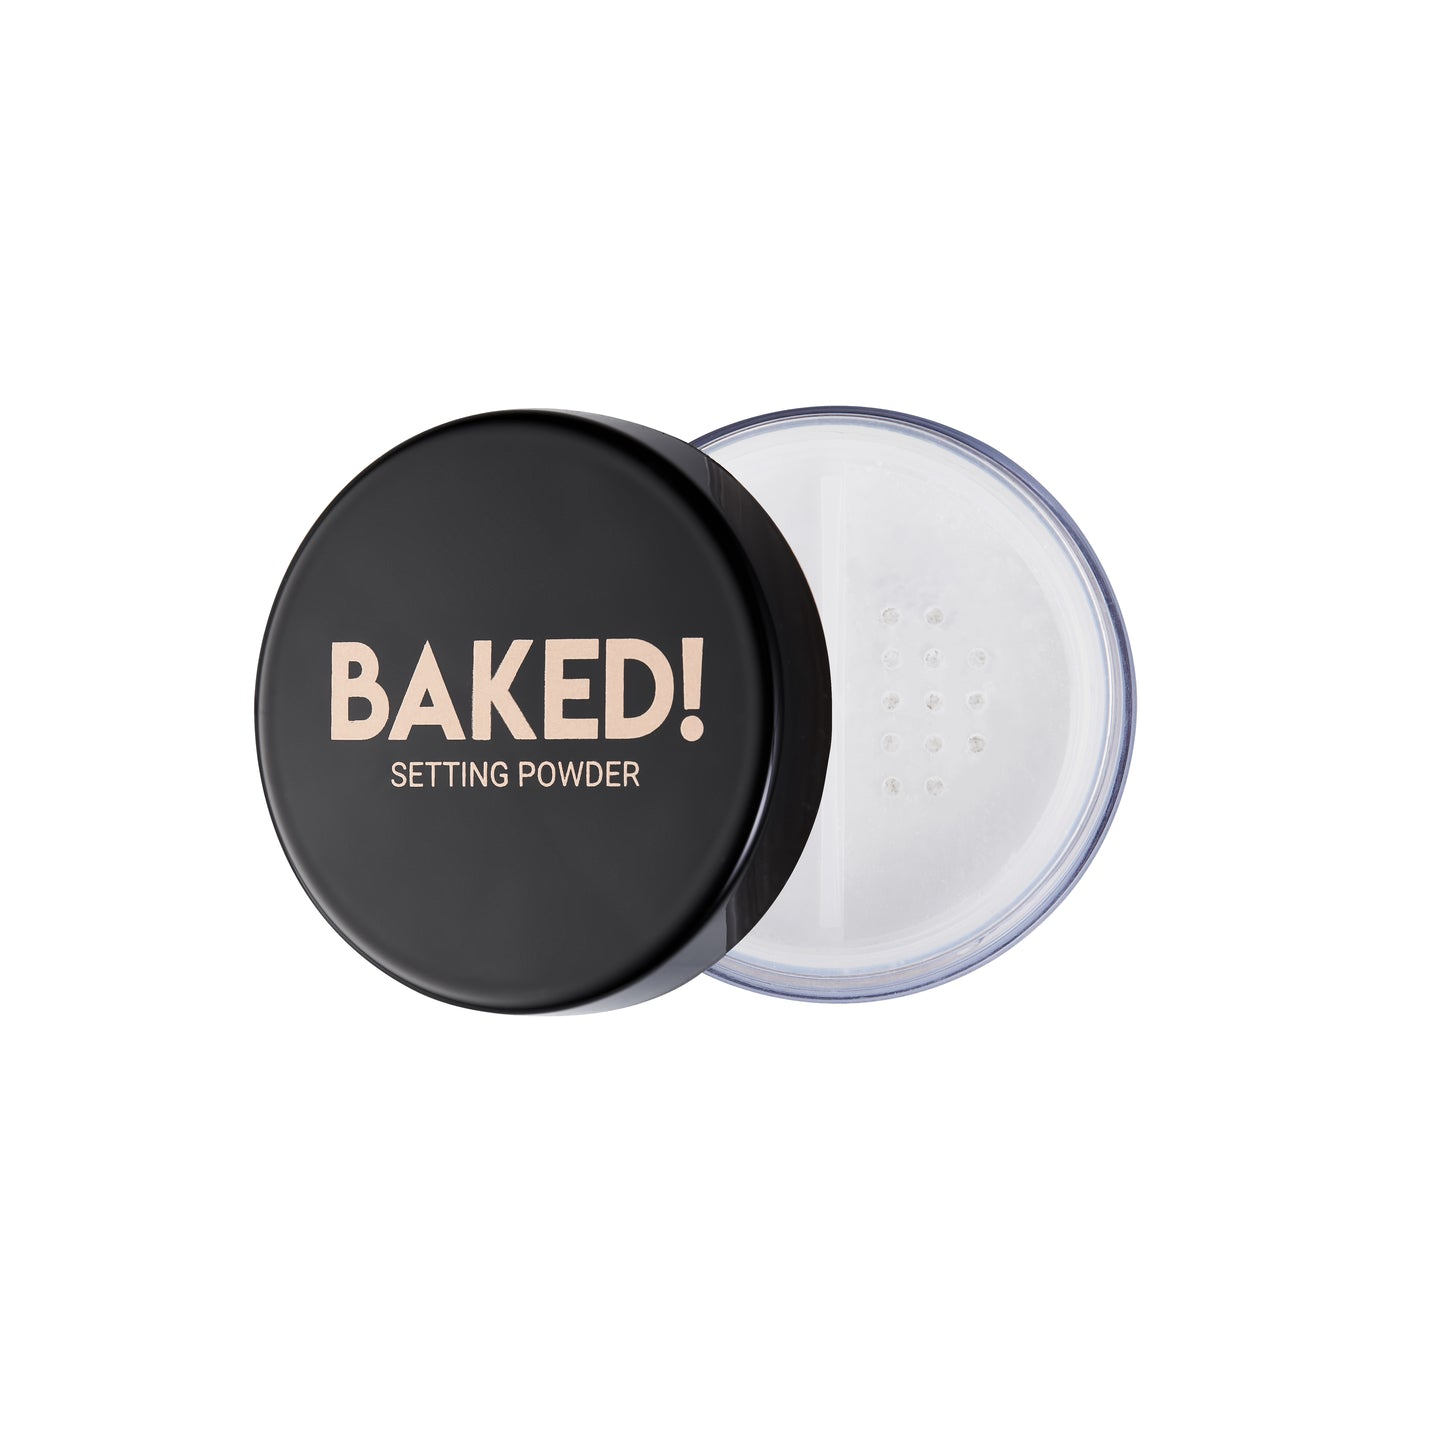 BAKED! Setting Powder Translucent Duo